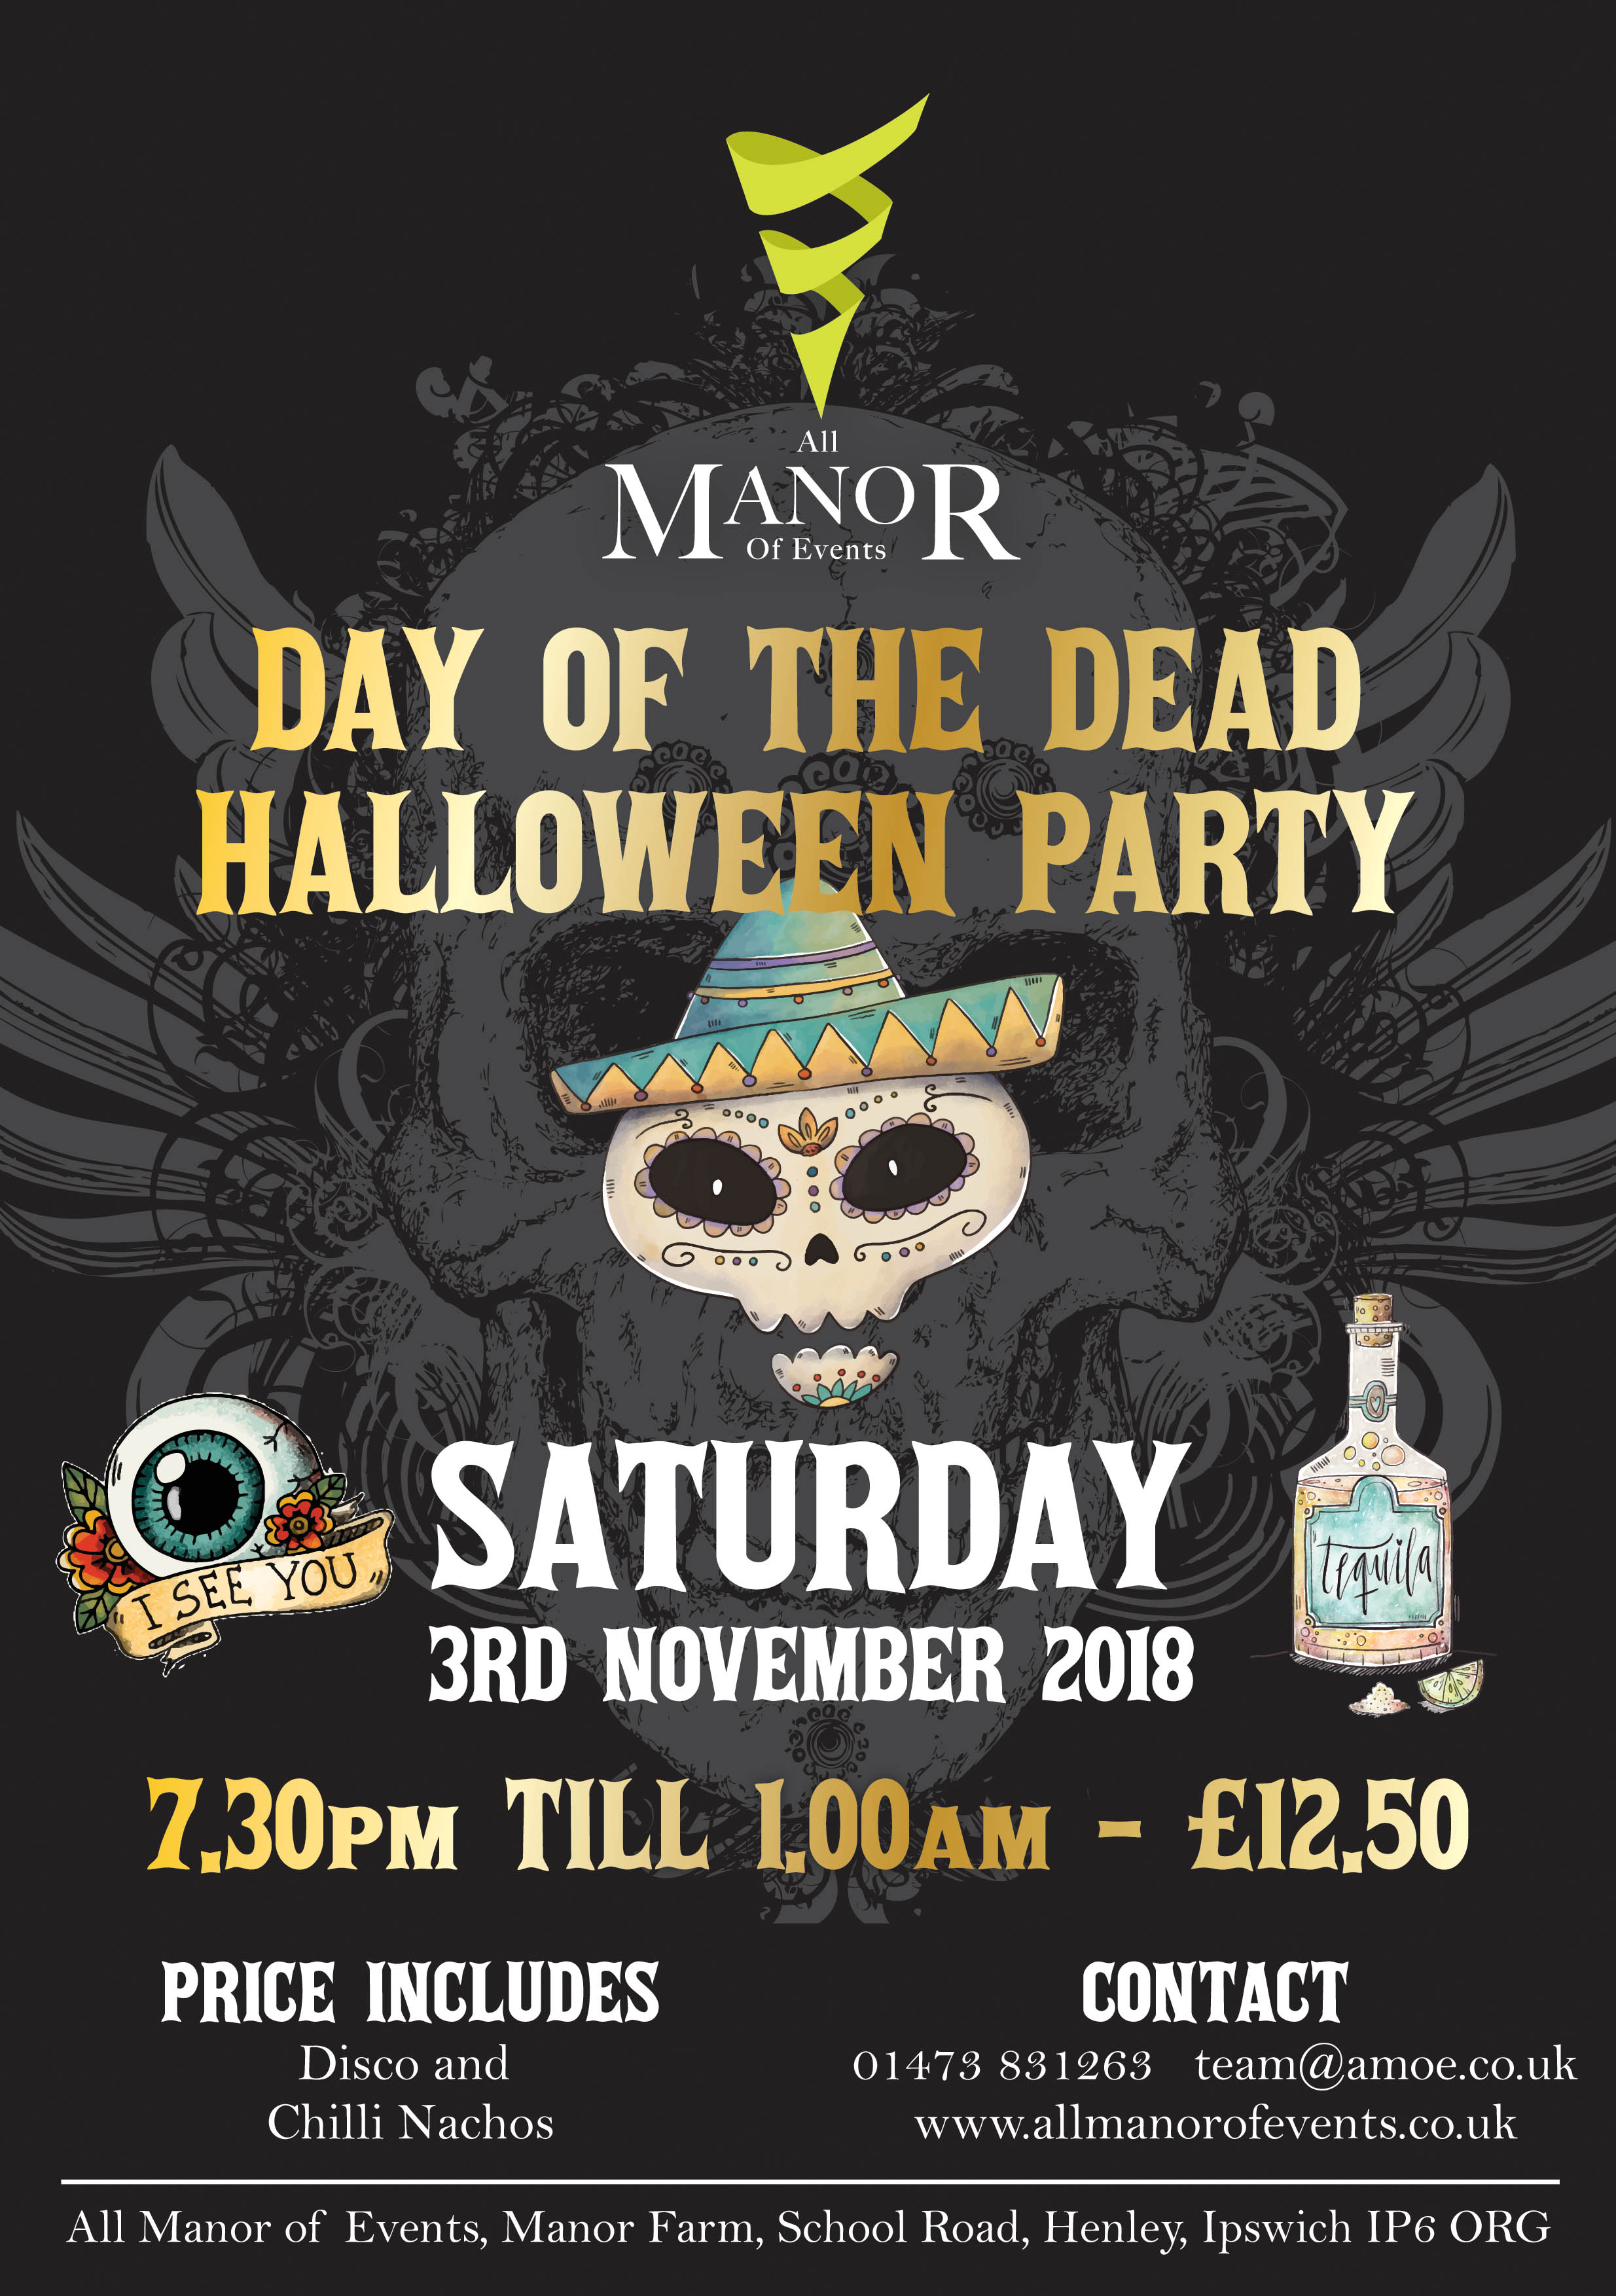 Day of the dead flyer